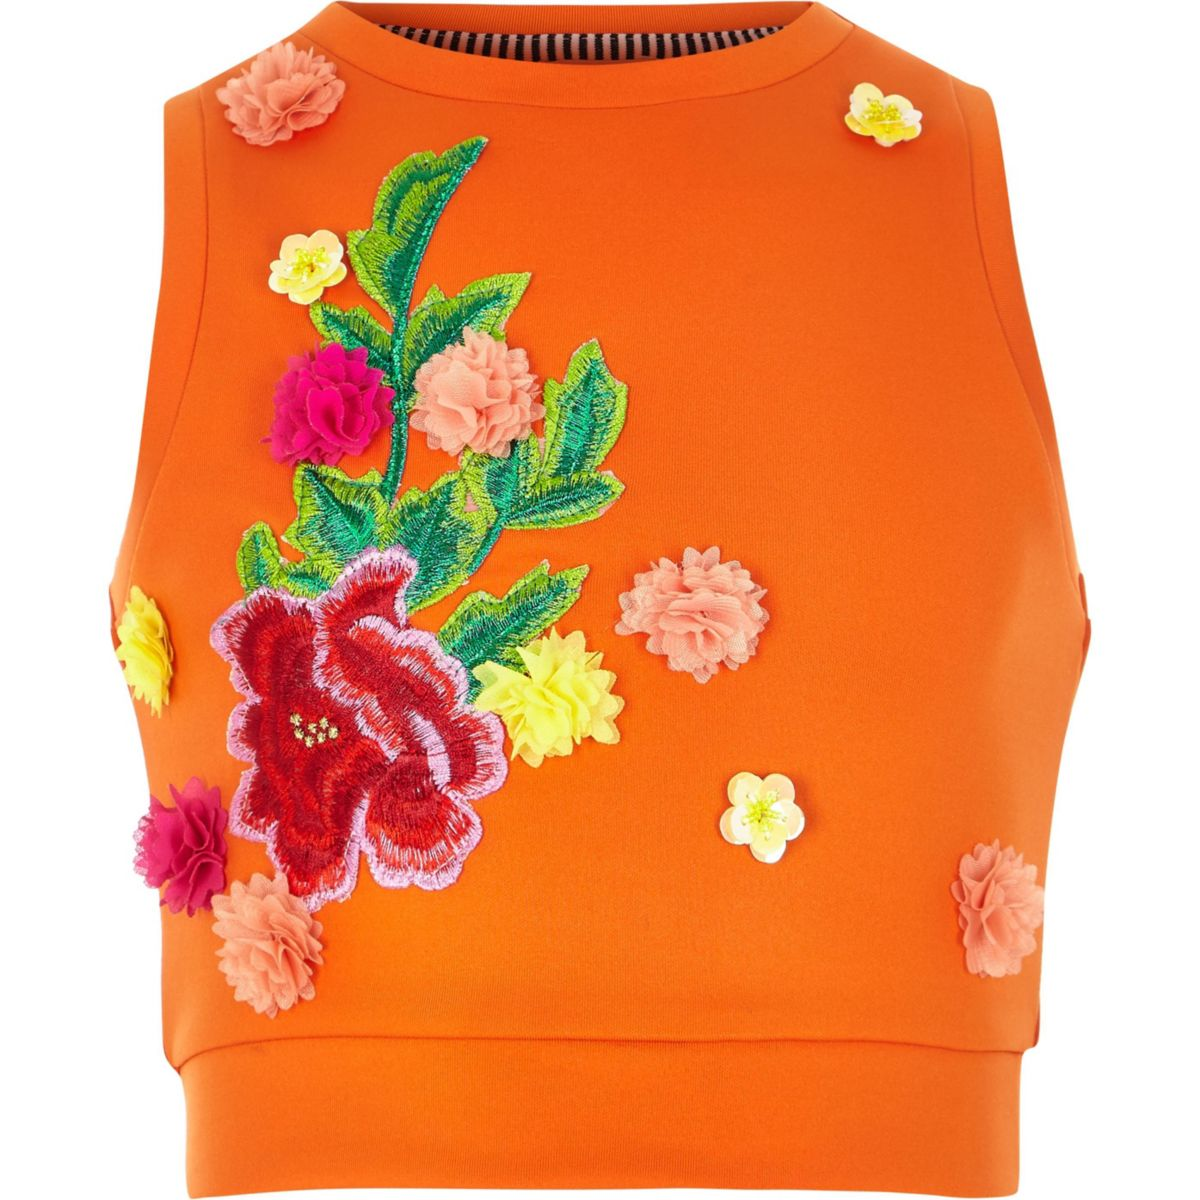 Girls orange RI Studio scuba tank top